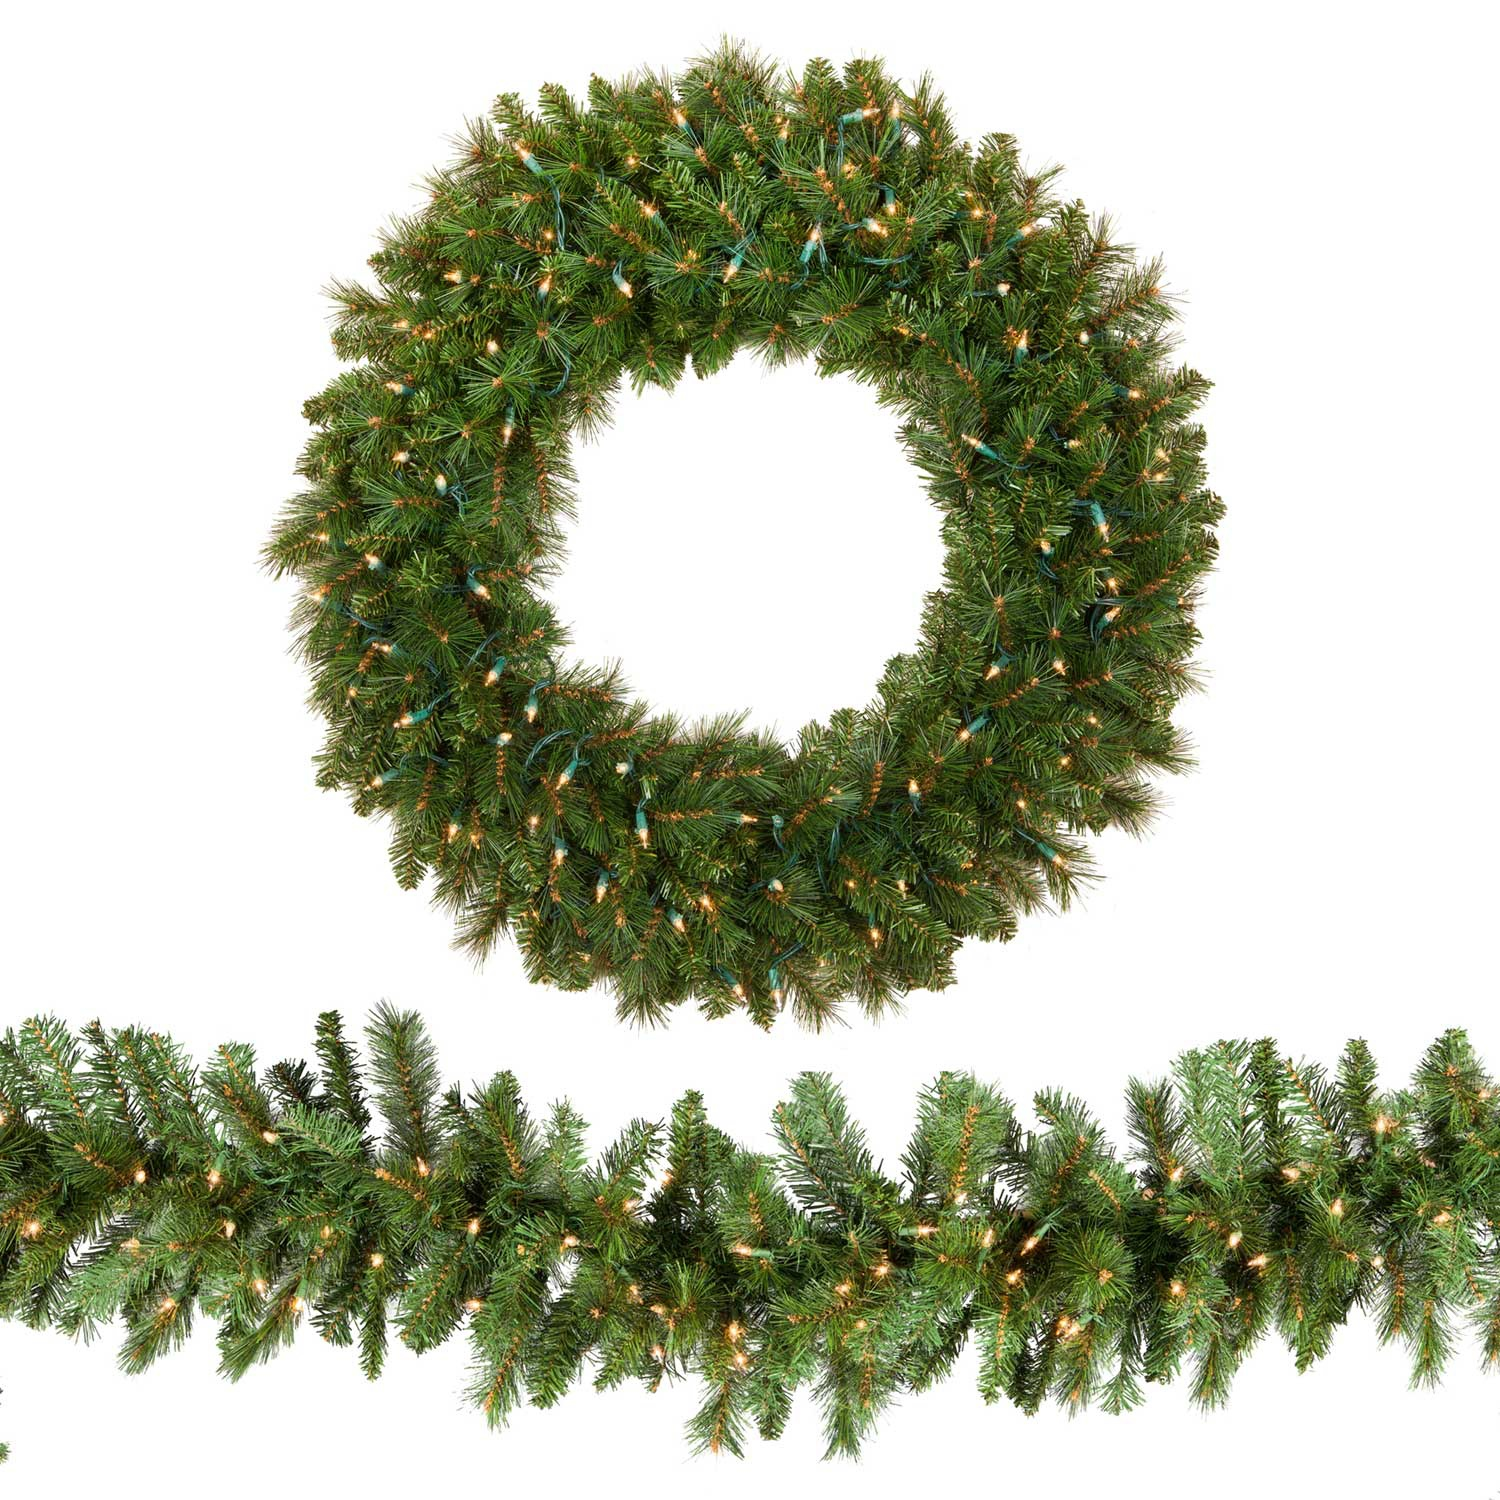 Christmas wreaths and garland Christmas wreath decorations